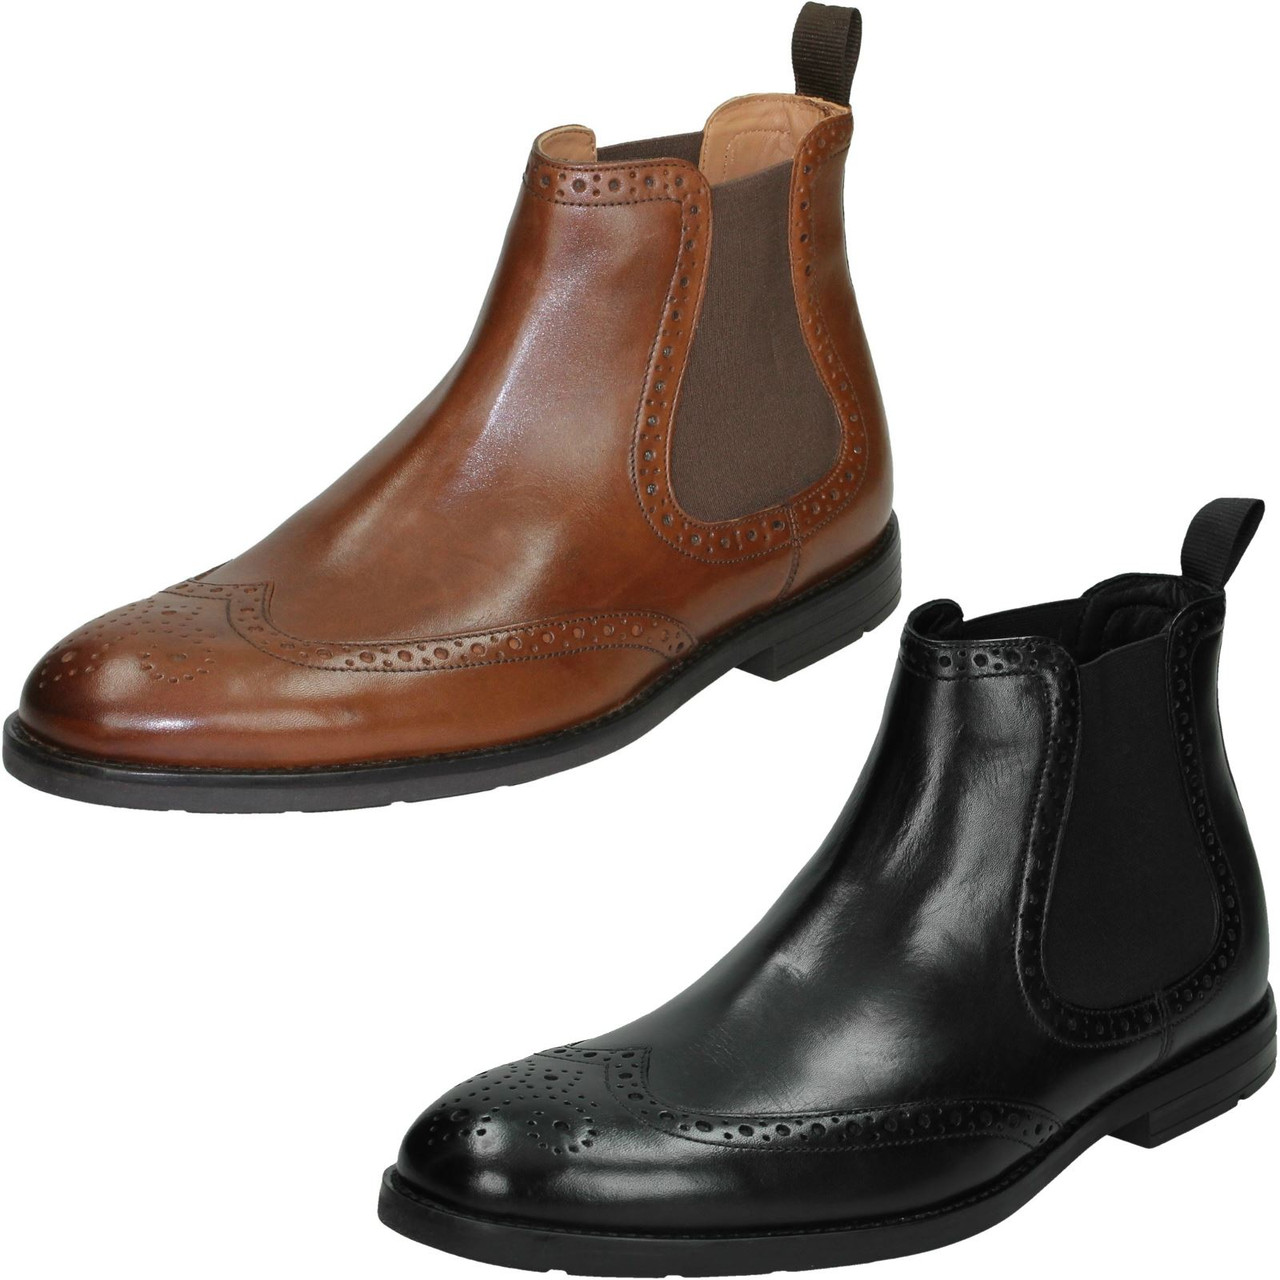 fantastic savings order great deals Mens Clarks Formal Ankle Boots Ronnie Top